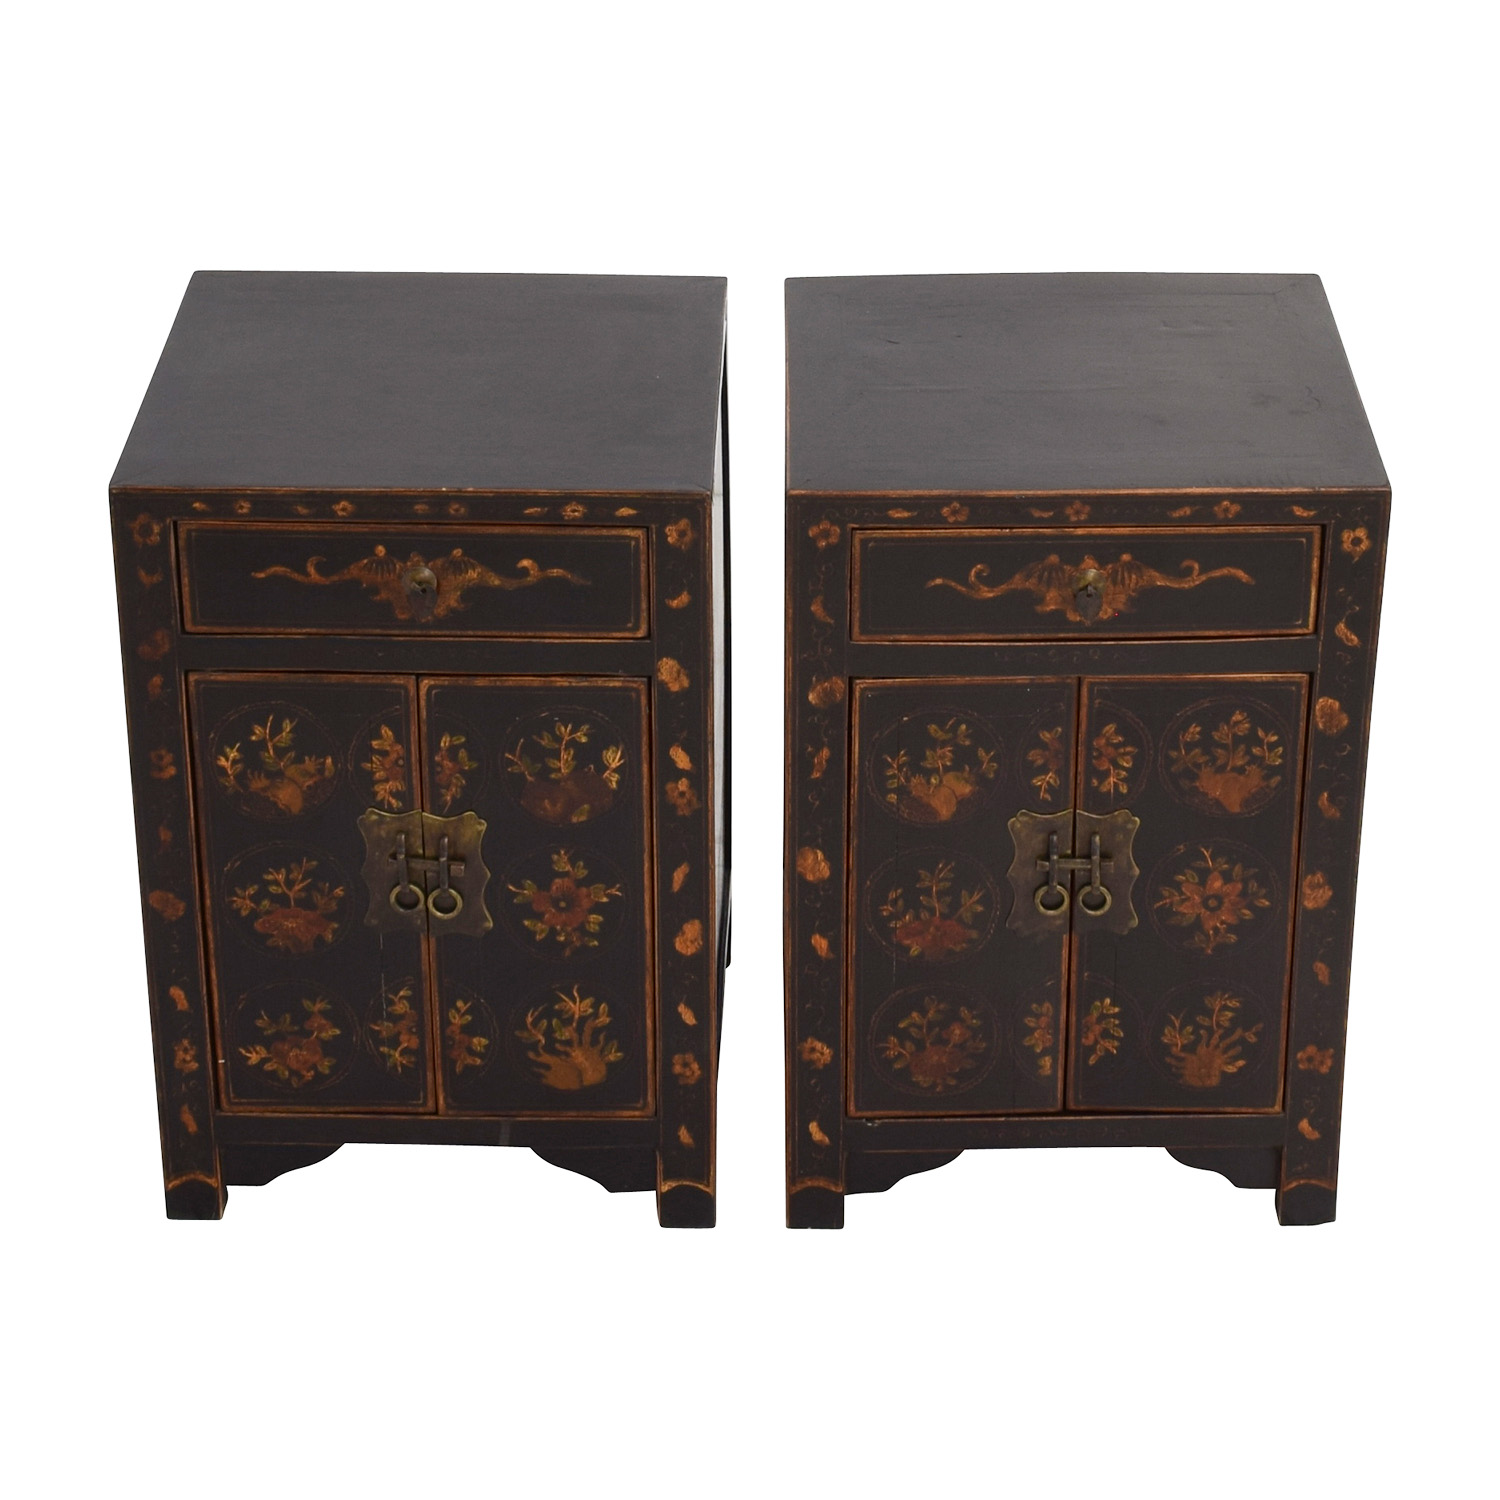 Antique Wood Side Tables with Floral Design